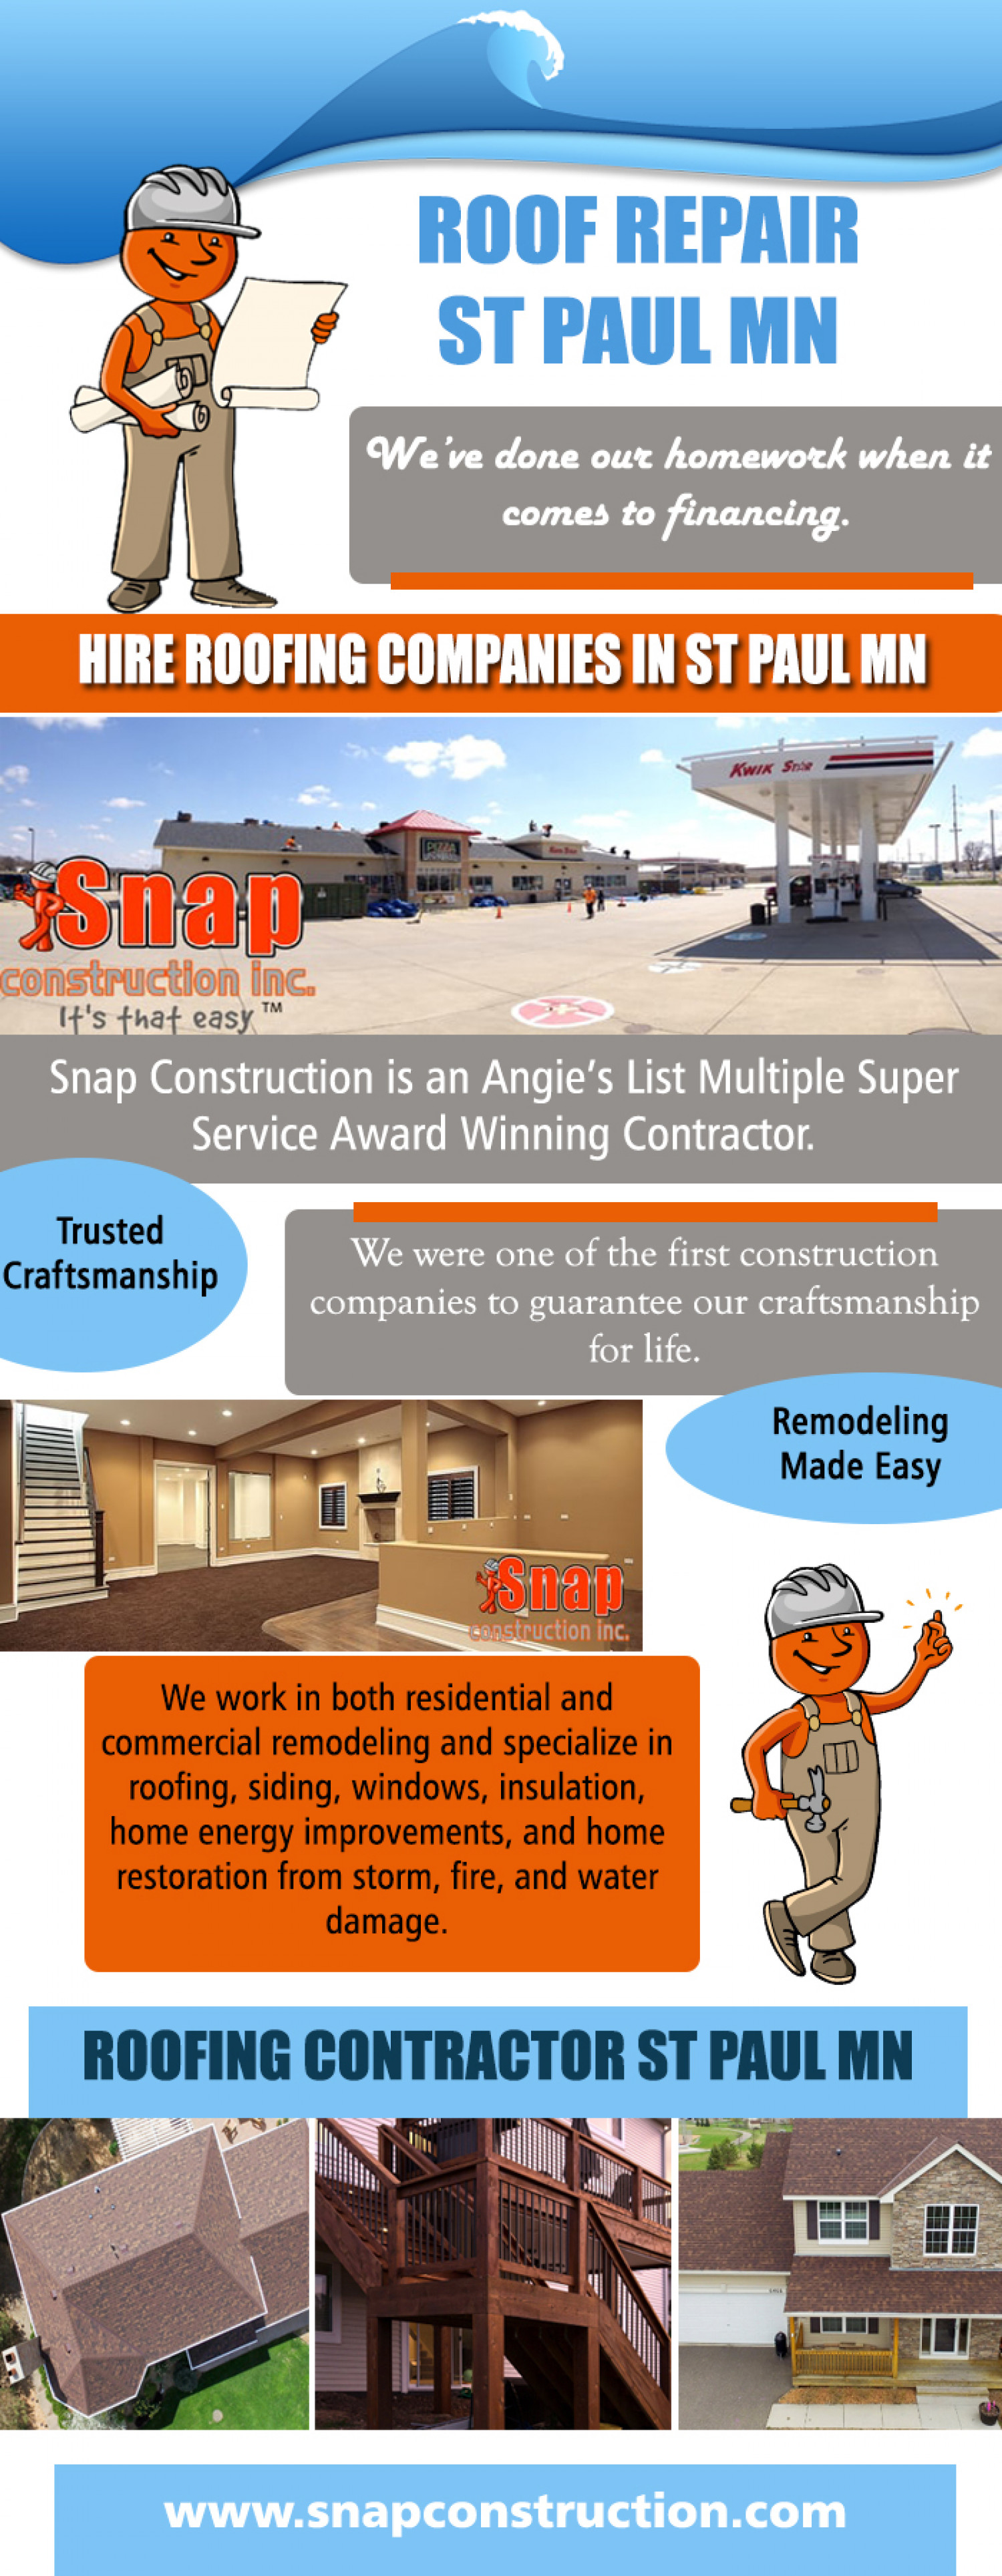 Roof Repair St Paul MN Infographic